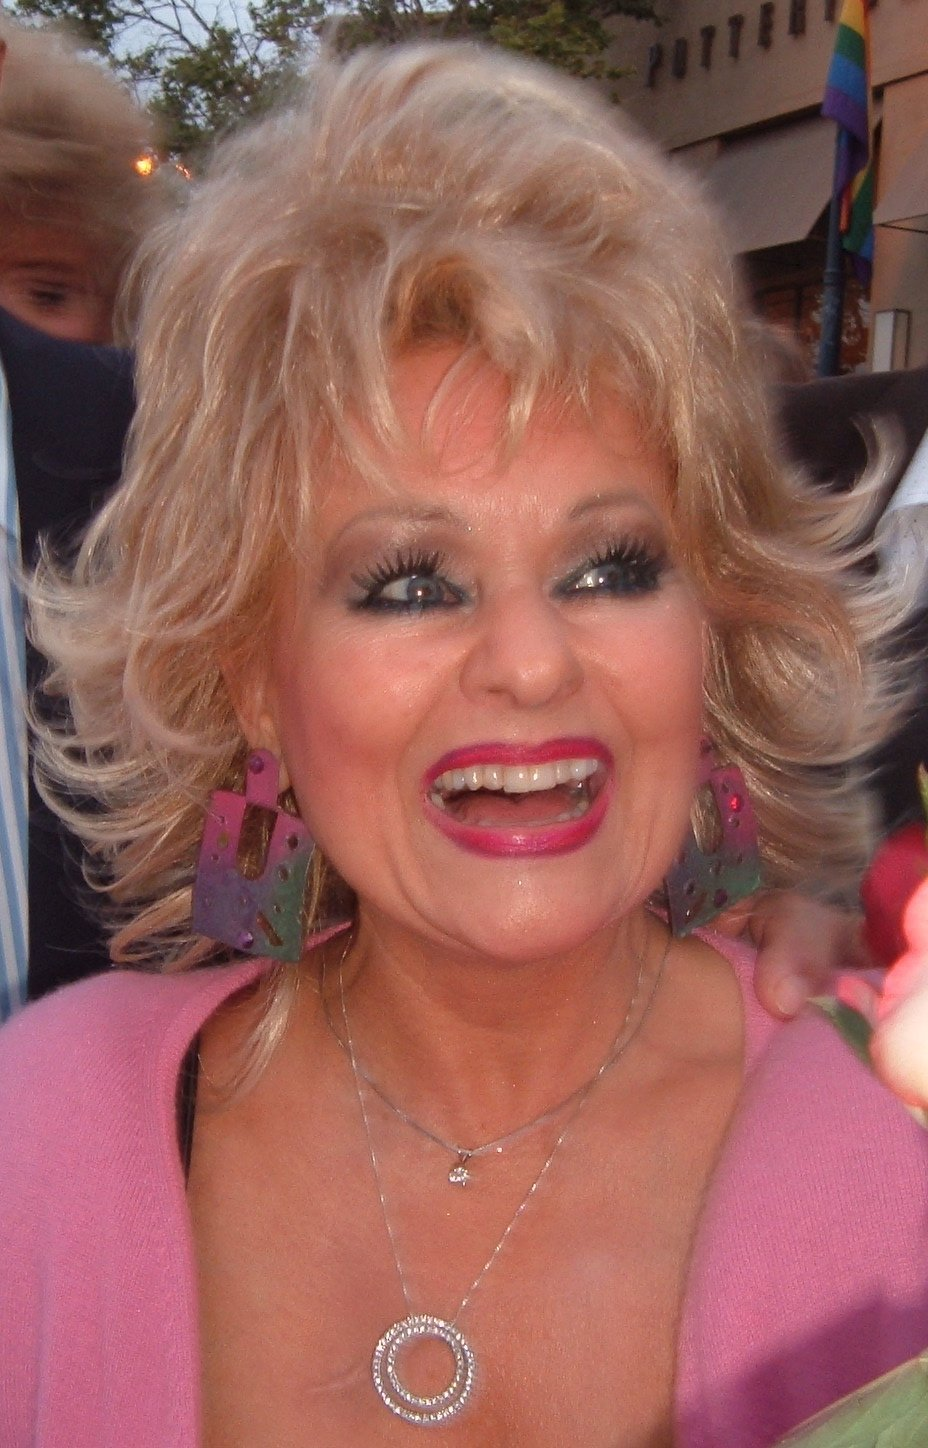 Tammy Faye Messner pictured on April 14, 2004 | Photo: Darwin Bell, CC BY 2.0 via Wikimedia Commons